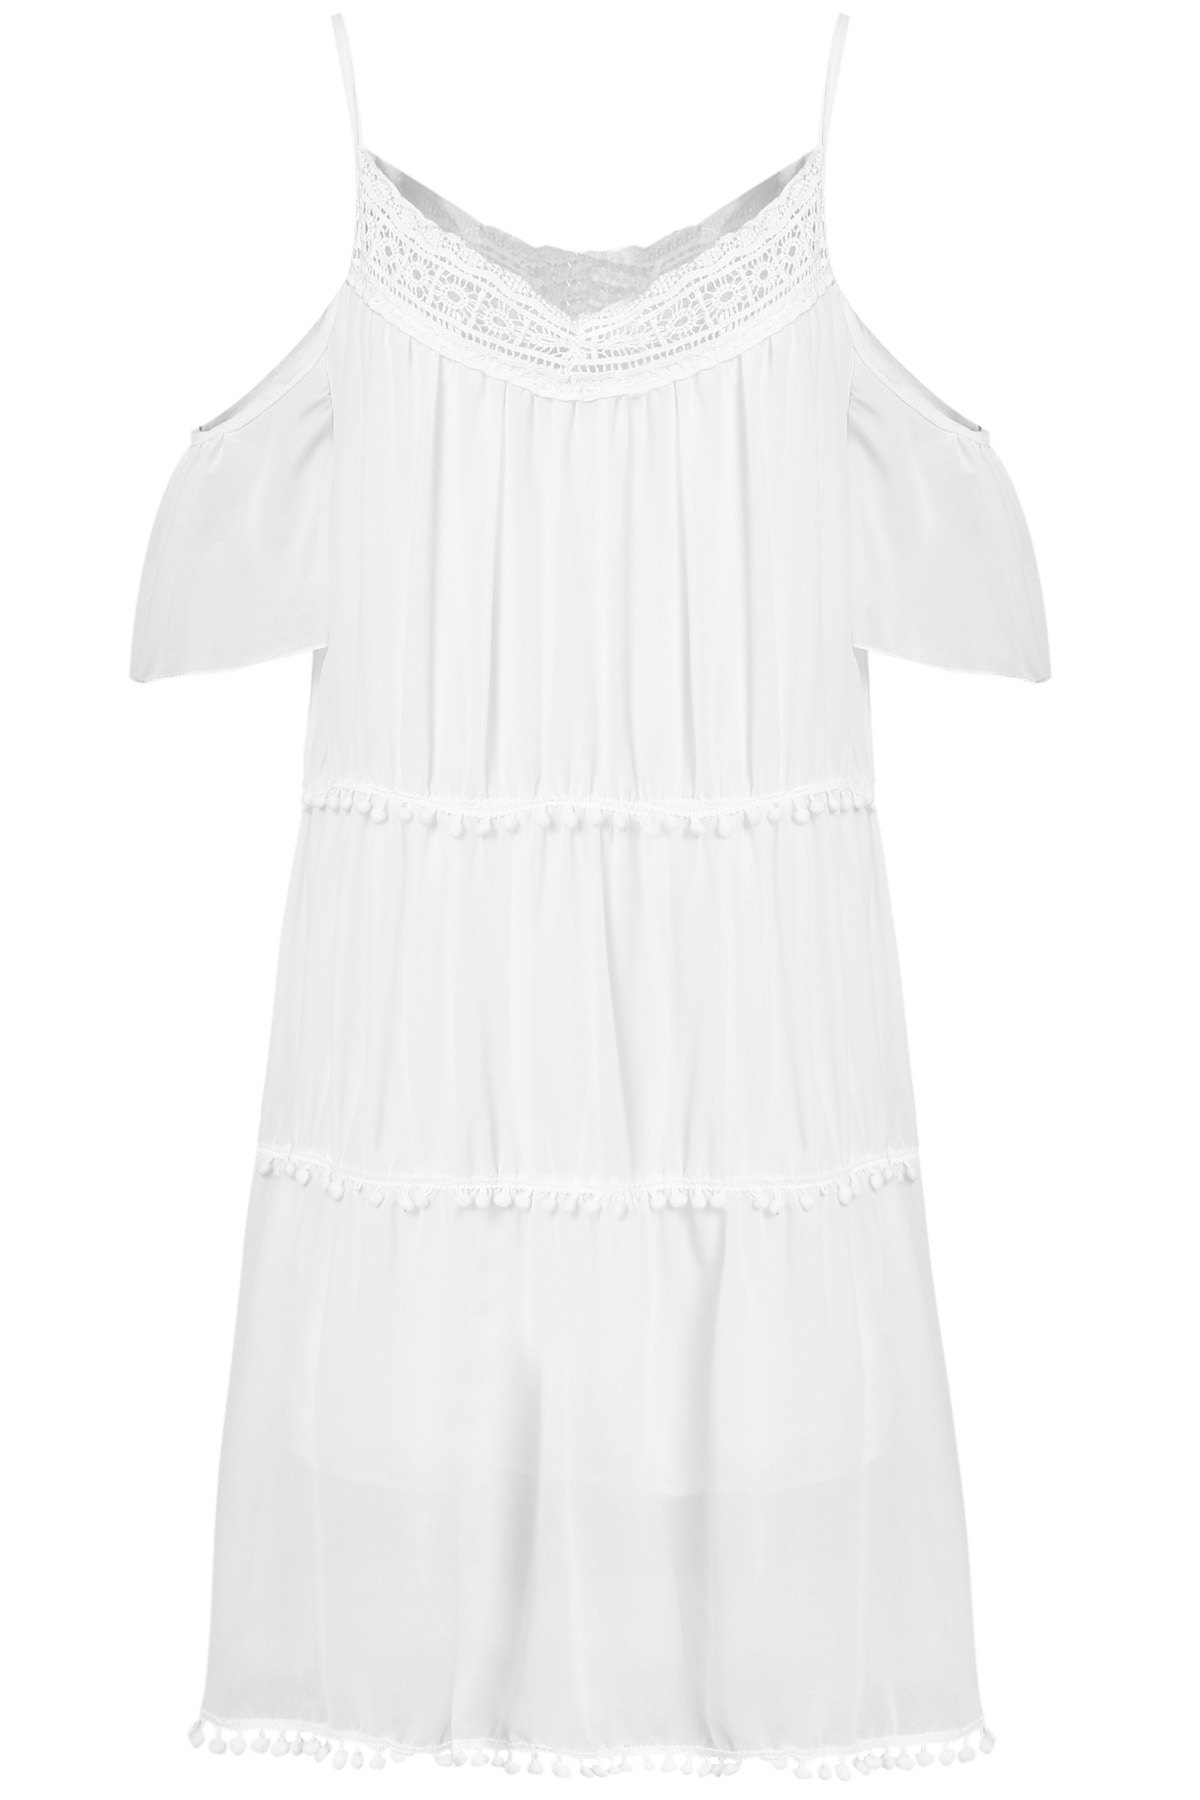 Stylish White Off The Shoulder Spaghetti Strap With Lace Women's Dress